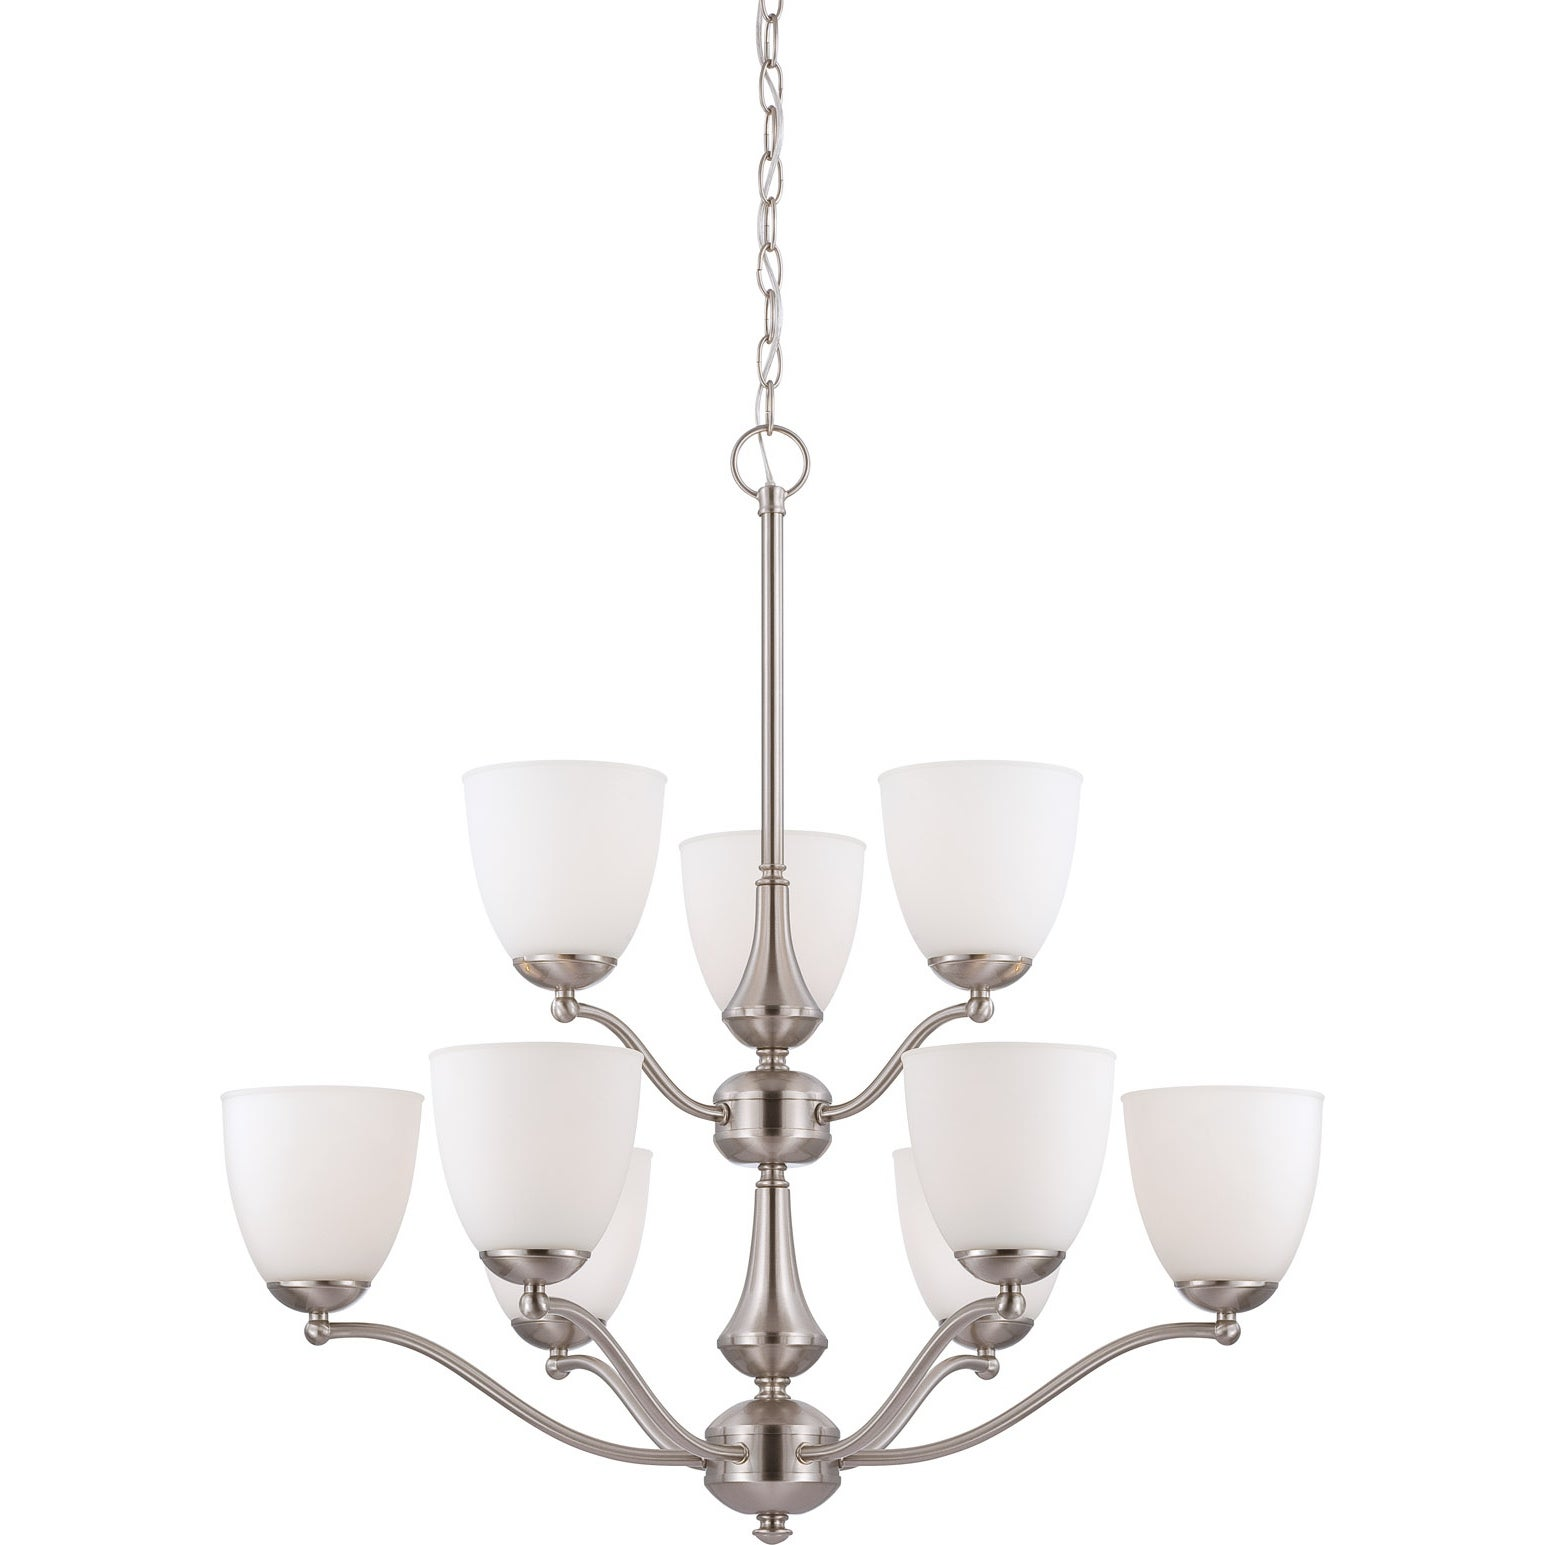 Nuvo Patton 9-light Brushed Nickel Fluorescent Chandelier